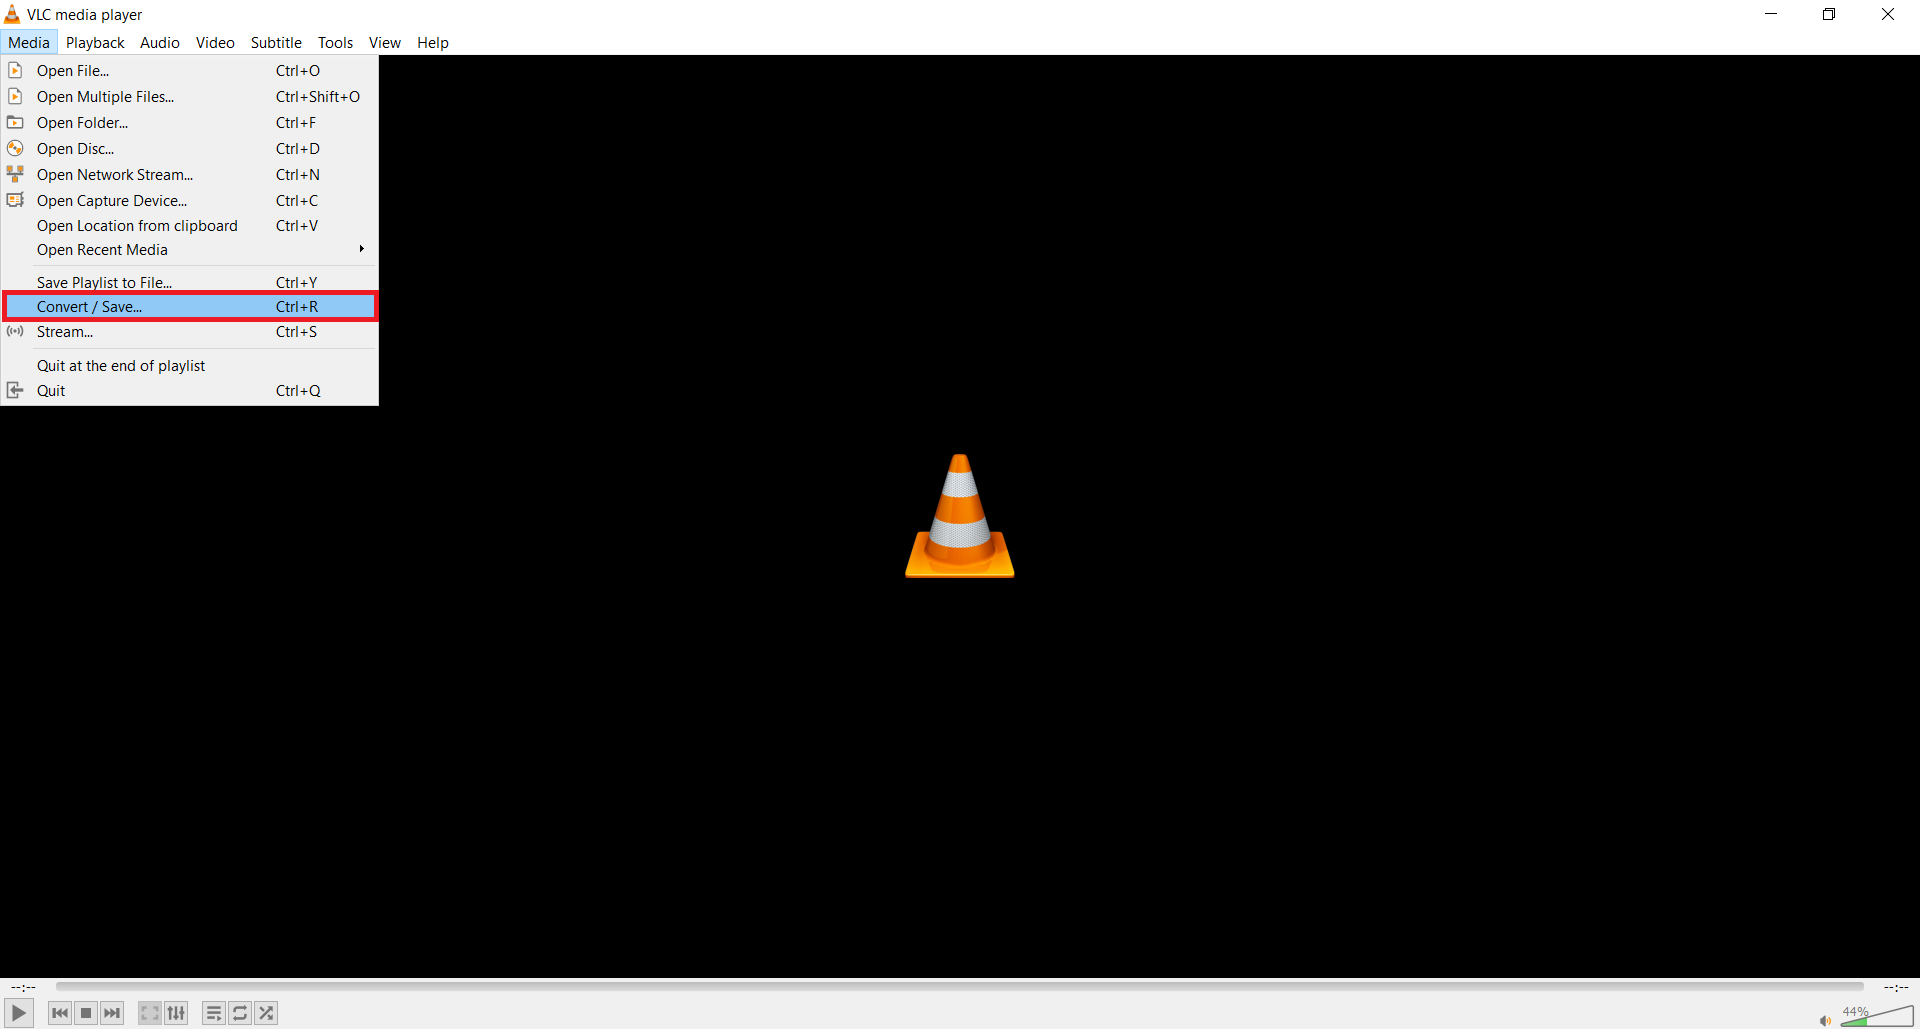 How to convert WAV to FLAC using a VLC media player?